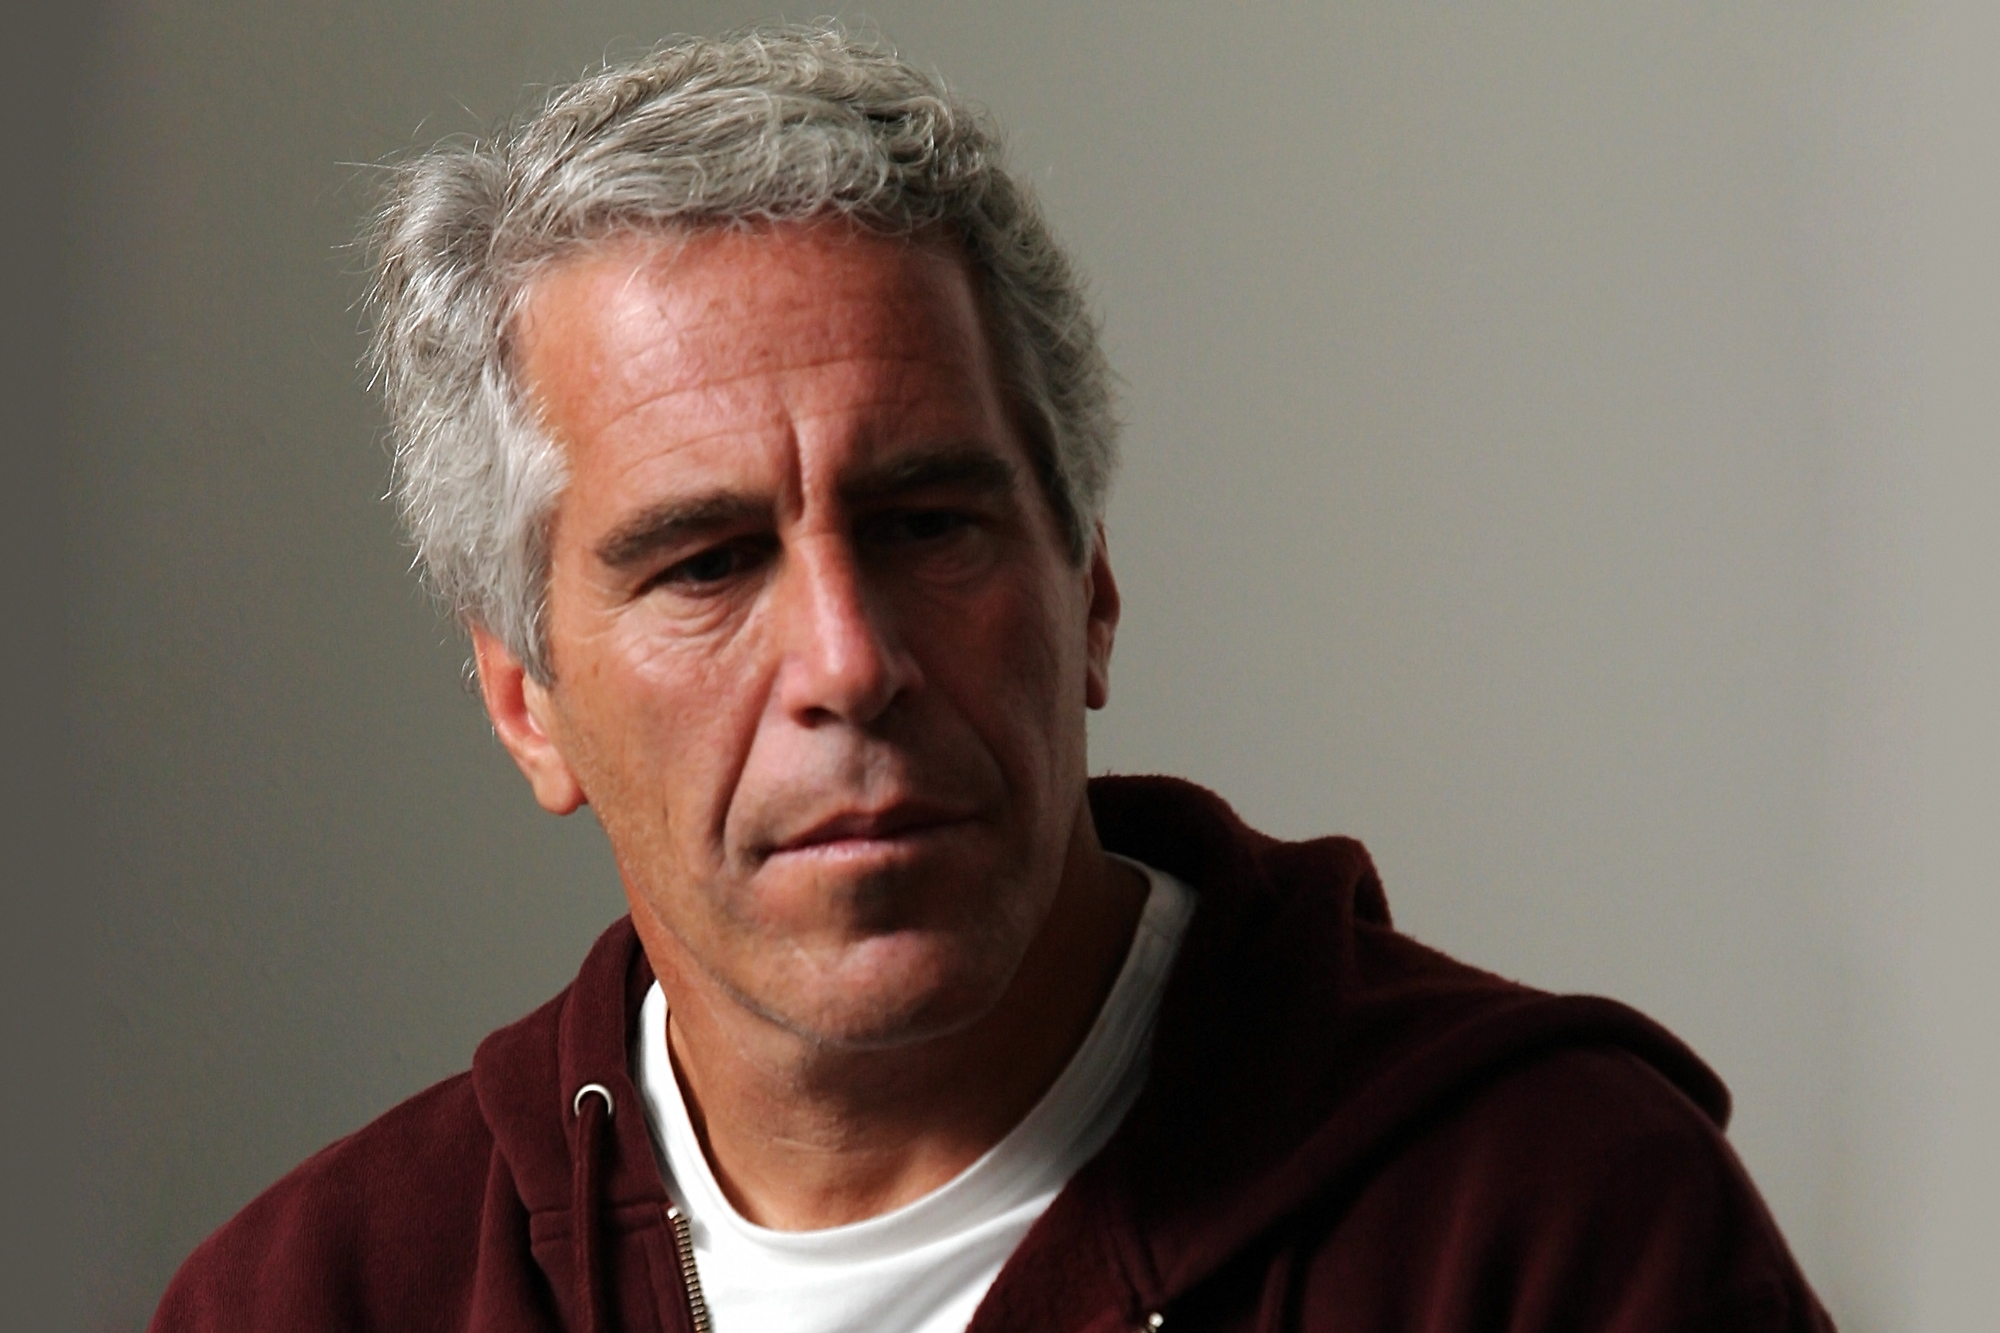 Jeffrey Epstein arrested in New York, charged with sex trafficking